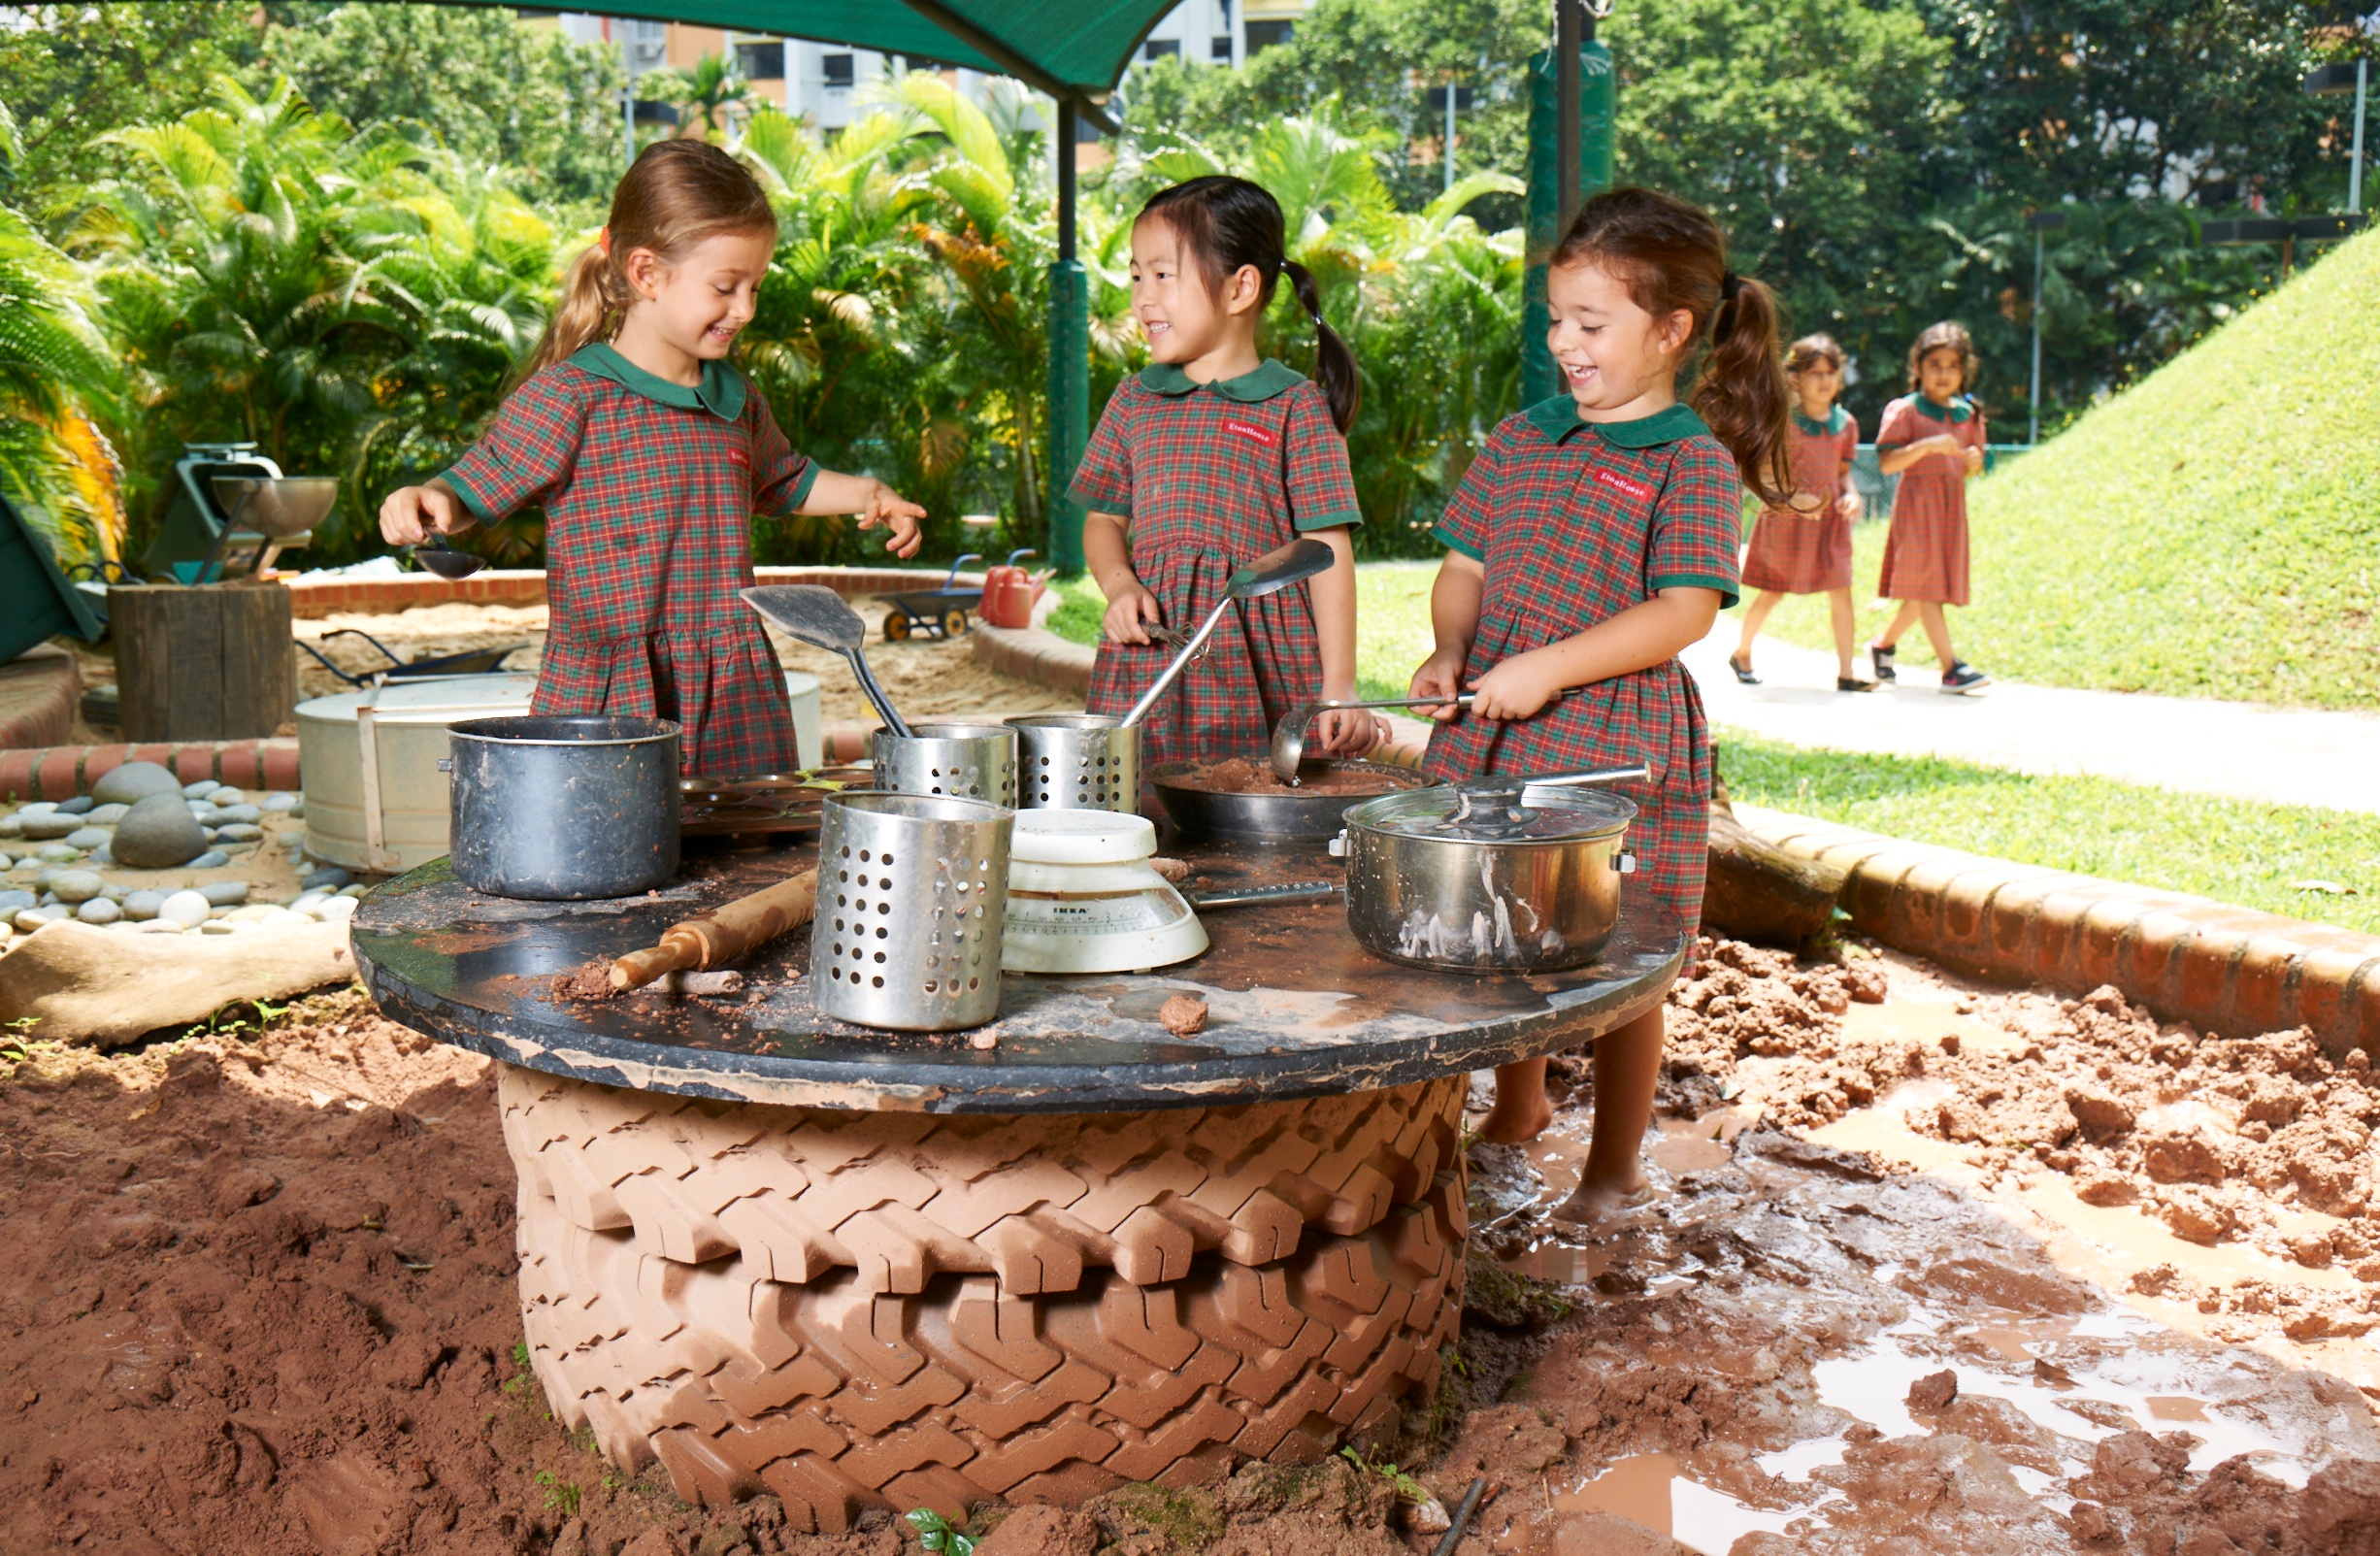 EtonHouse Blog - Outdoor learning is not just limited to physical development of children through gross motor play.